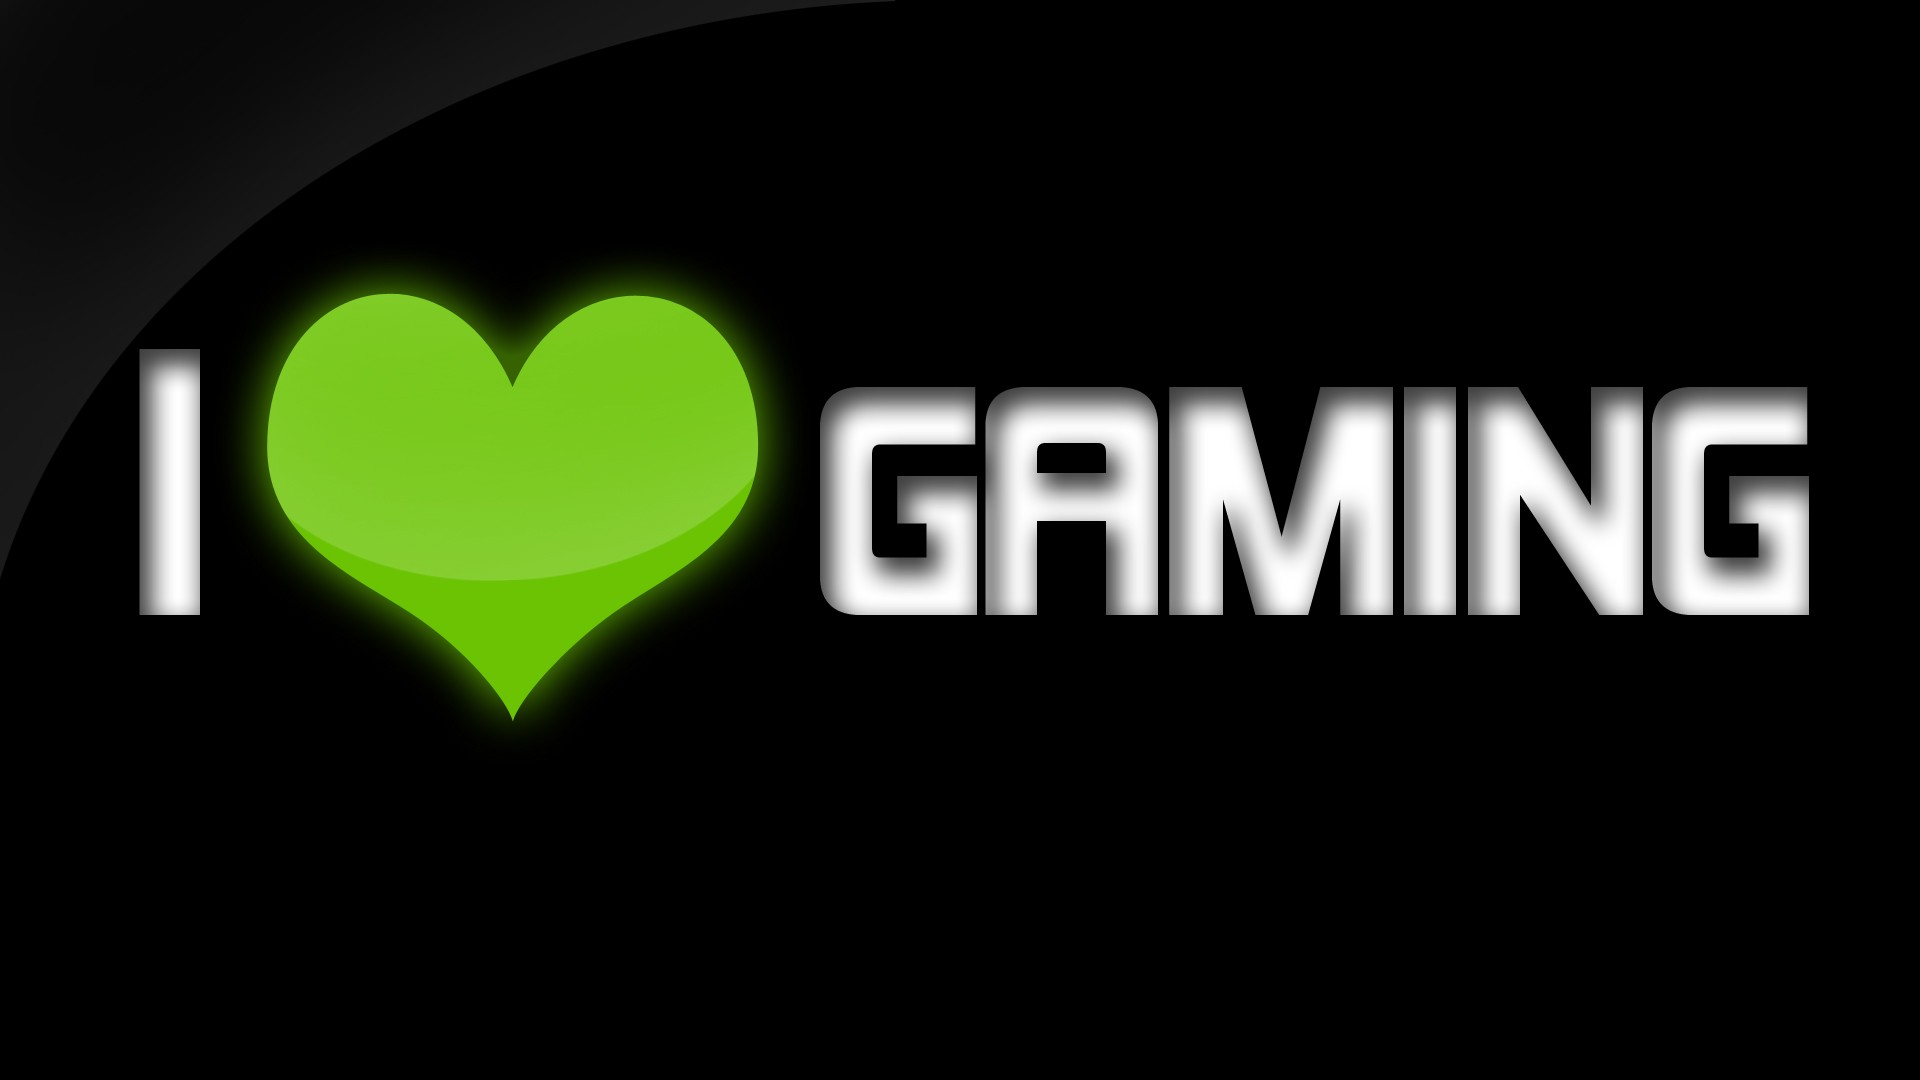 Image: Wallpaper-Gamers-MUO88.jpg